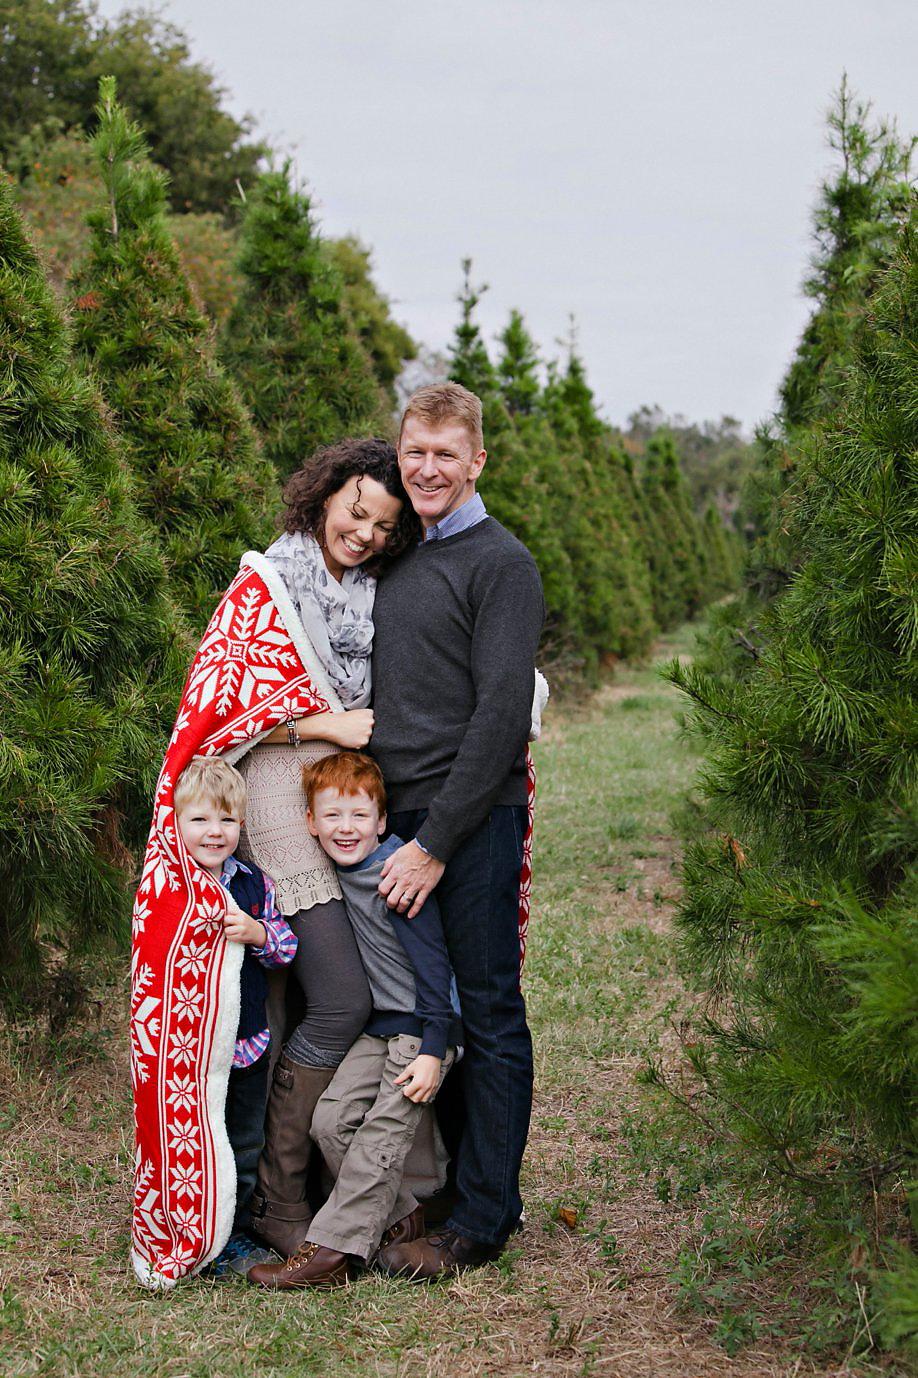 Christmas Tree Farm Mini Sessions.Sneak Peek Christmas Mini Sessions Holiday Acres Tree